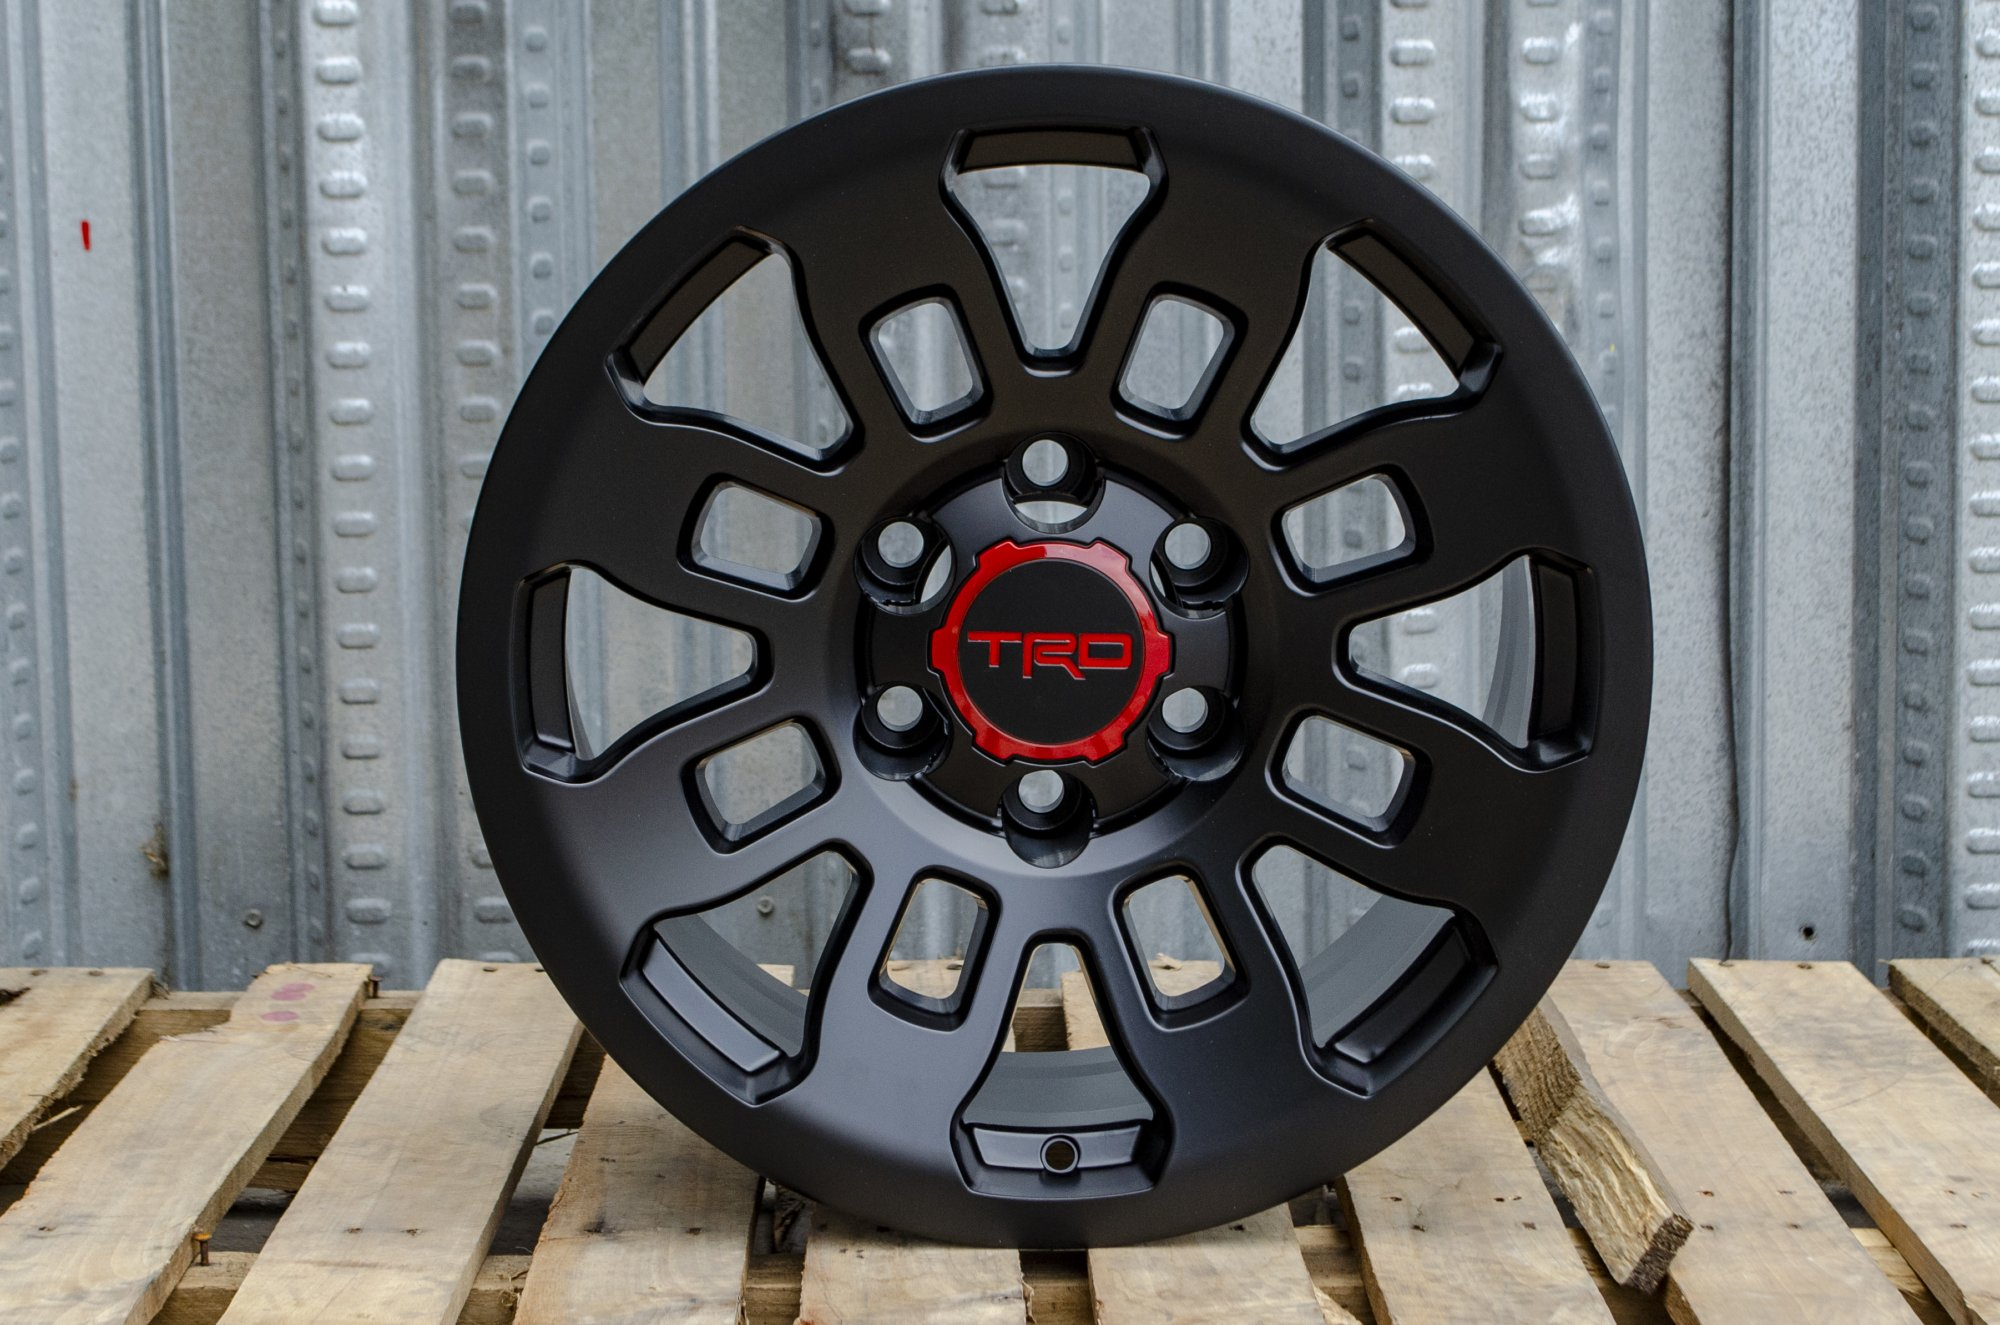 Alphasone Replica Wheels - TR2: Toyota